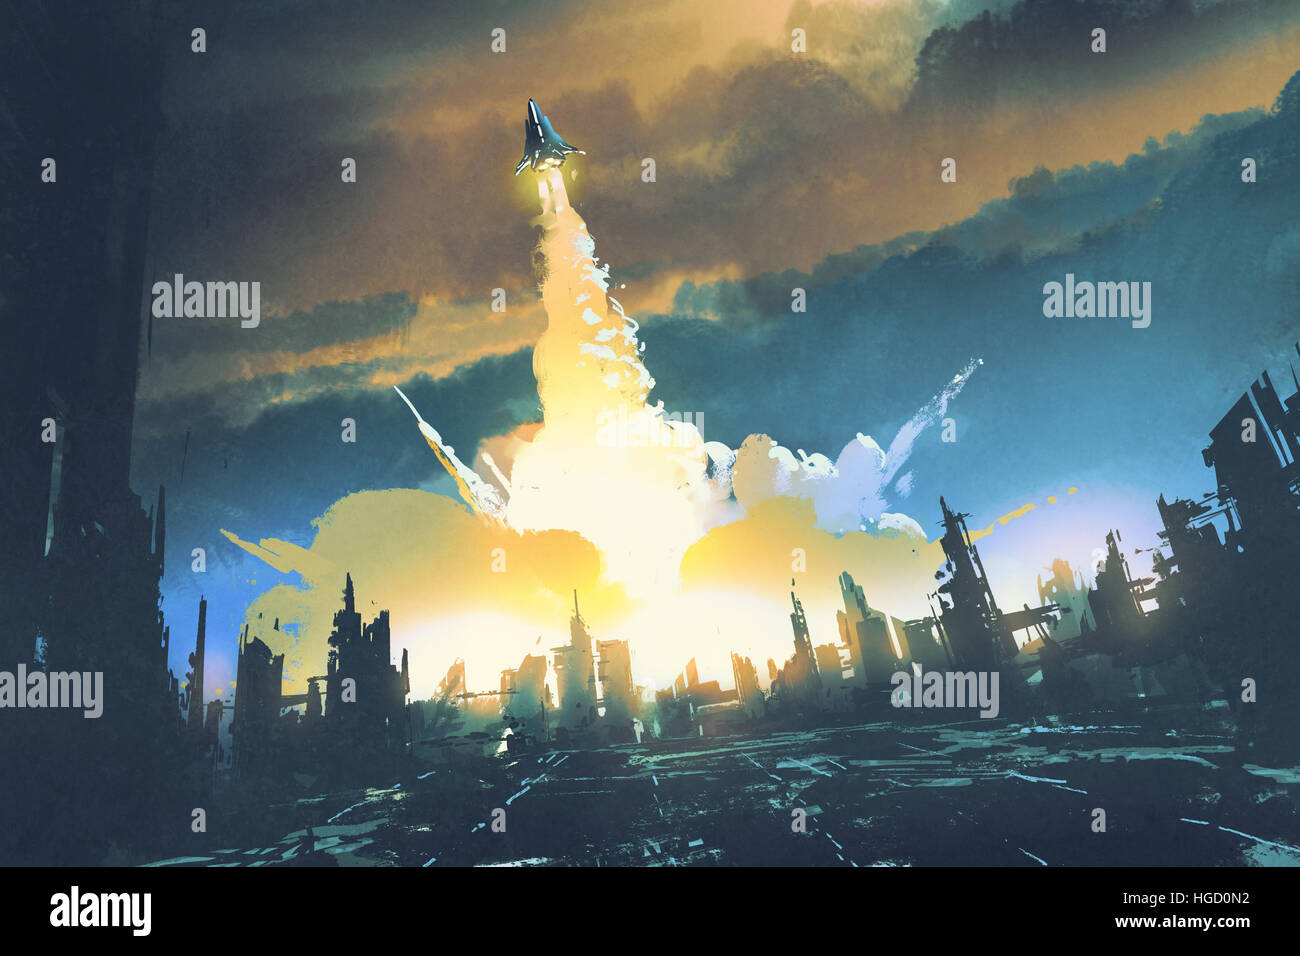 rocket launch take off from an abandoned city,sci-fi concept,illustration painting - Stock Image